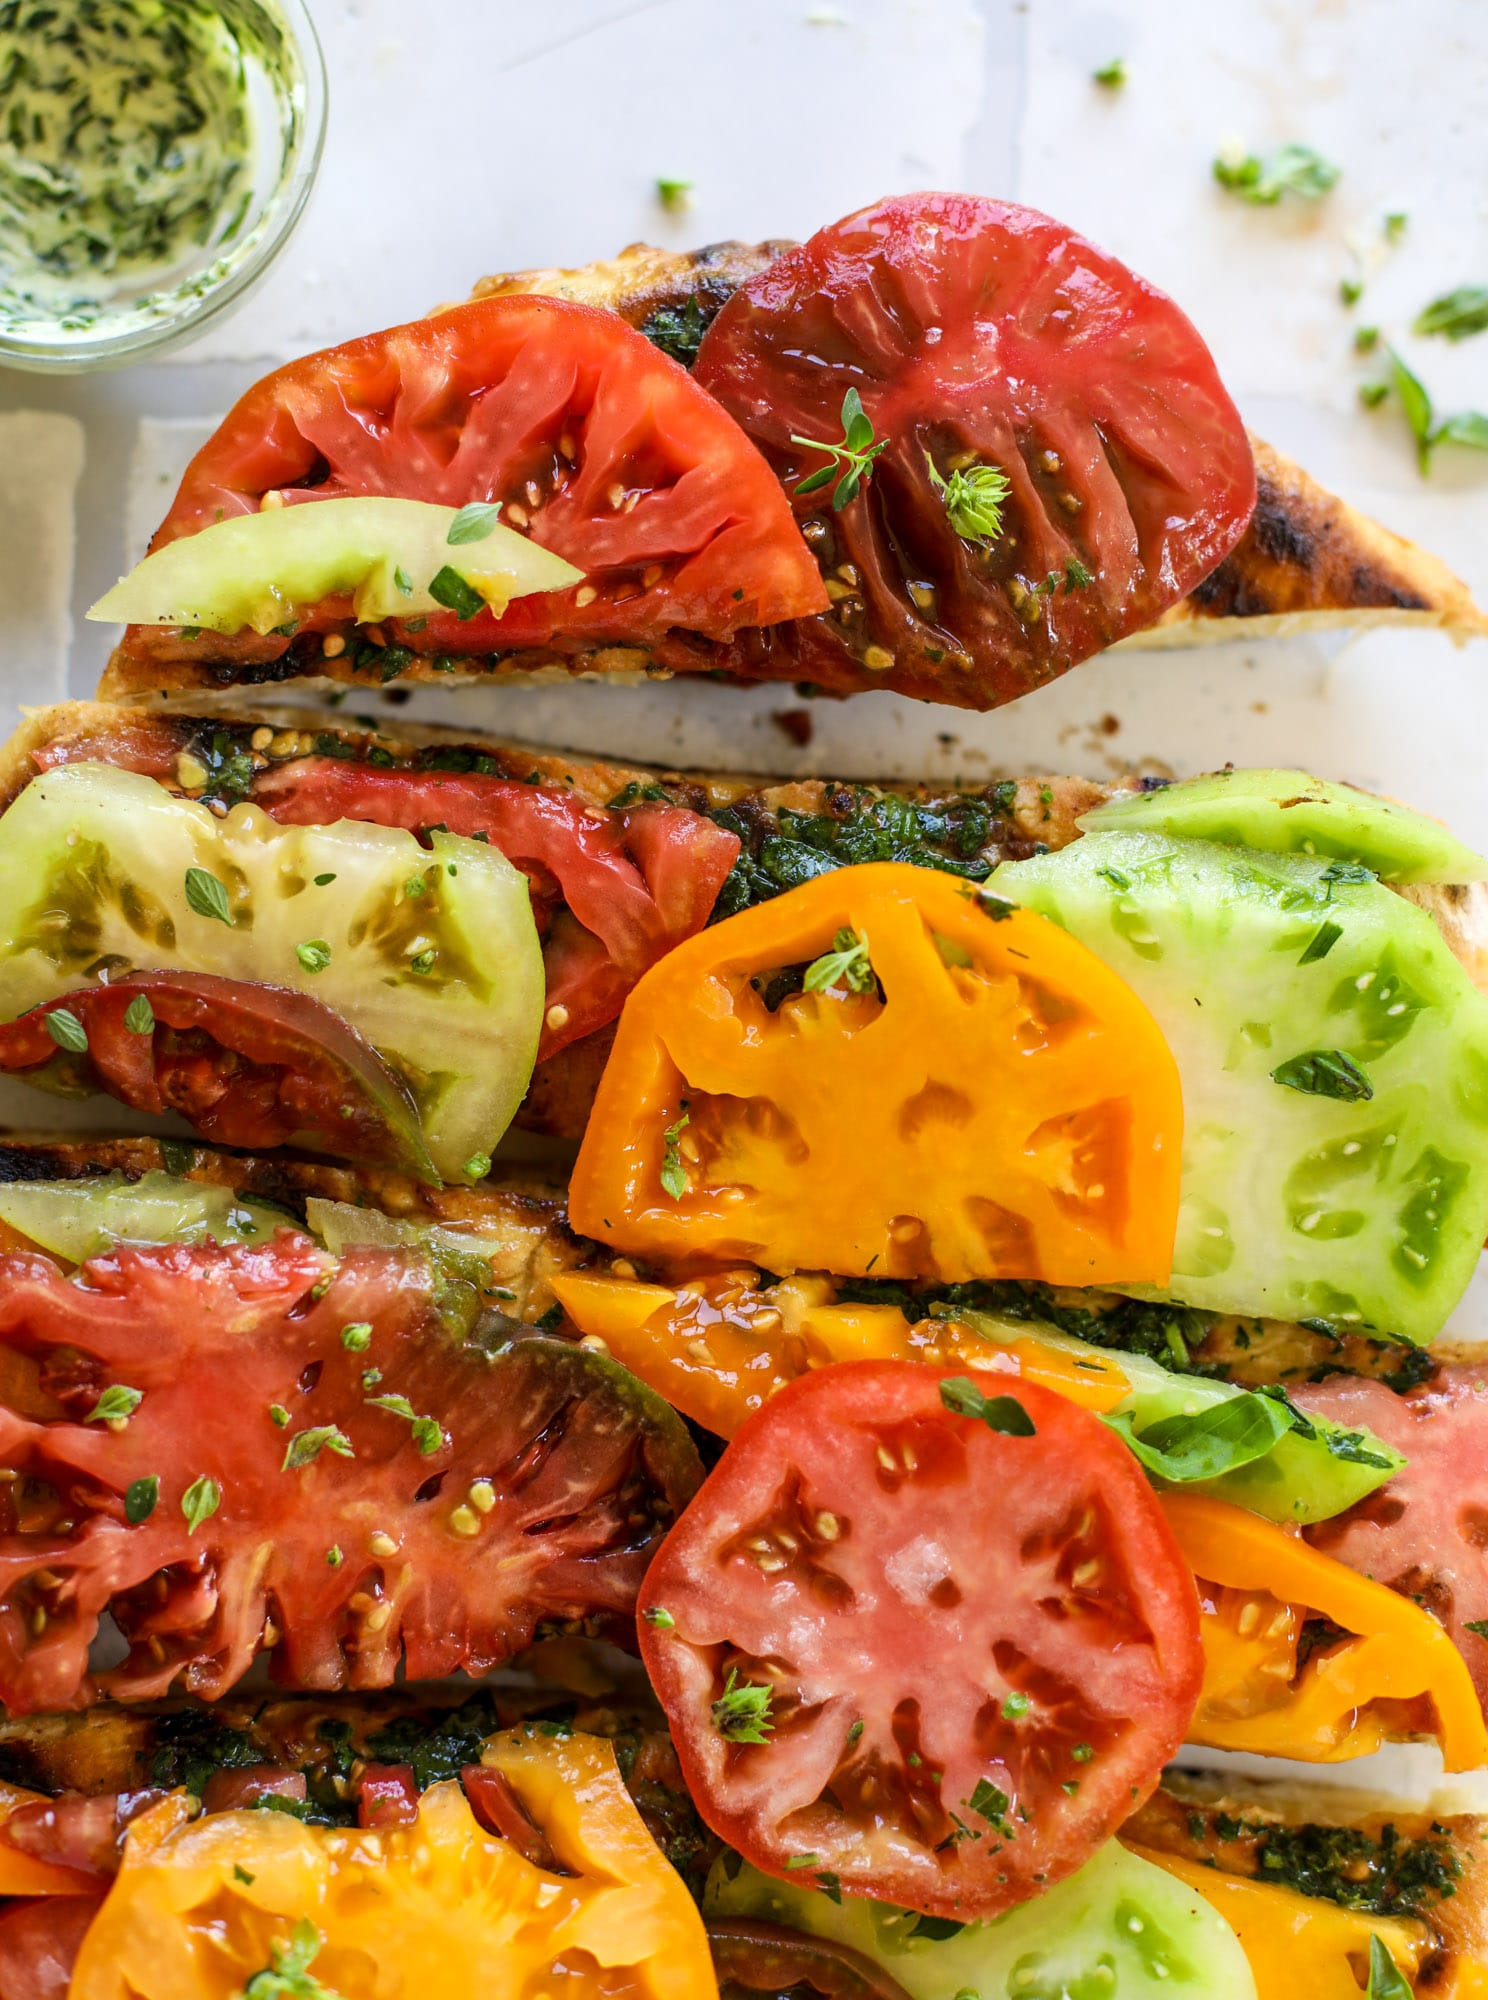 This heirloom tomato pizza starts with a grilled garlic herb butter crust! Melty herb butter and sliced fresh tomatoes top it off for a delicious bite!